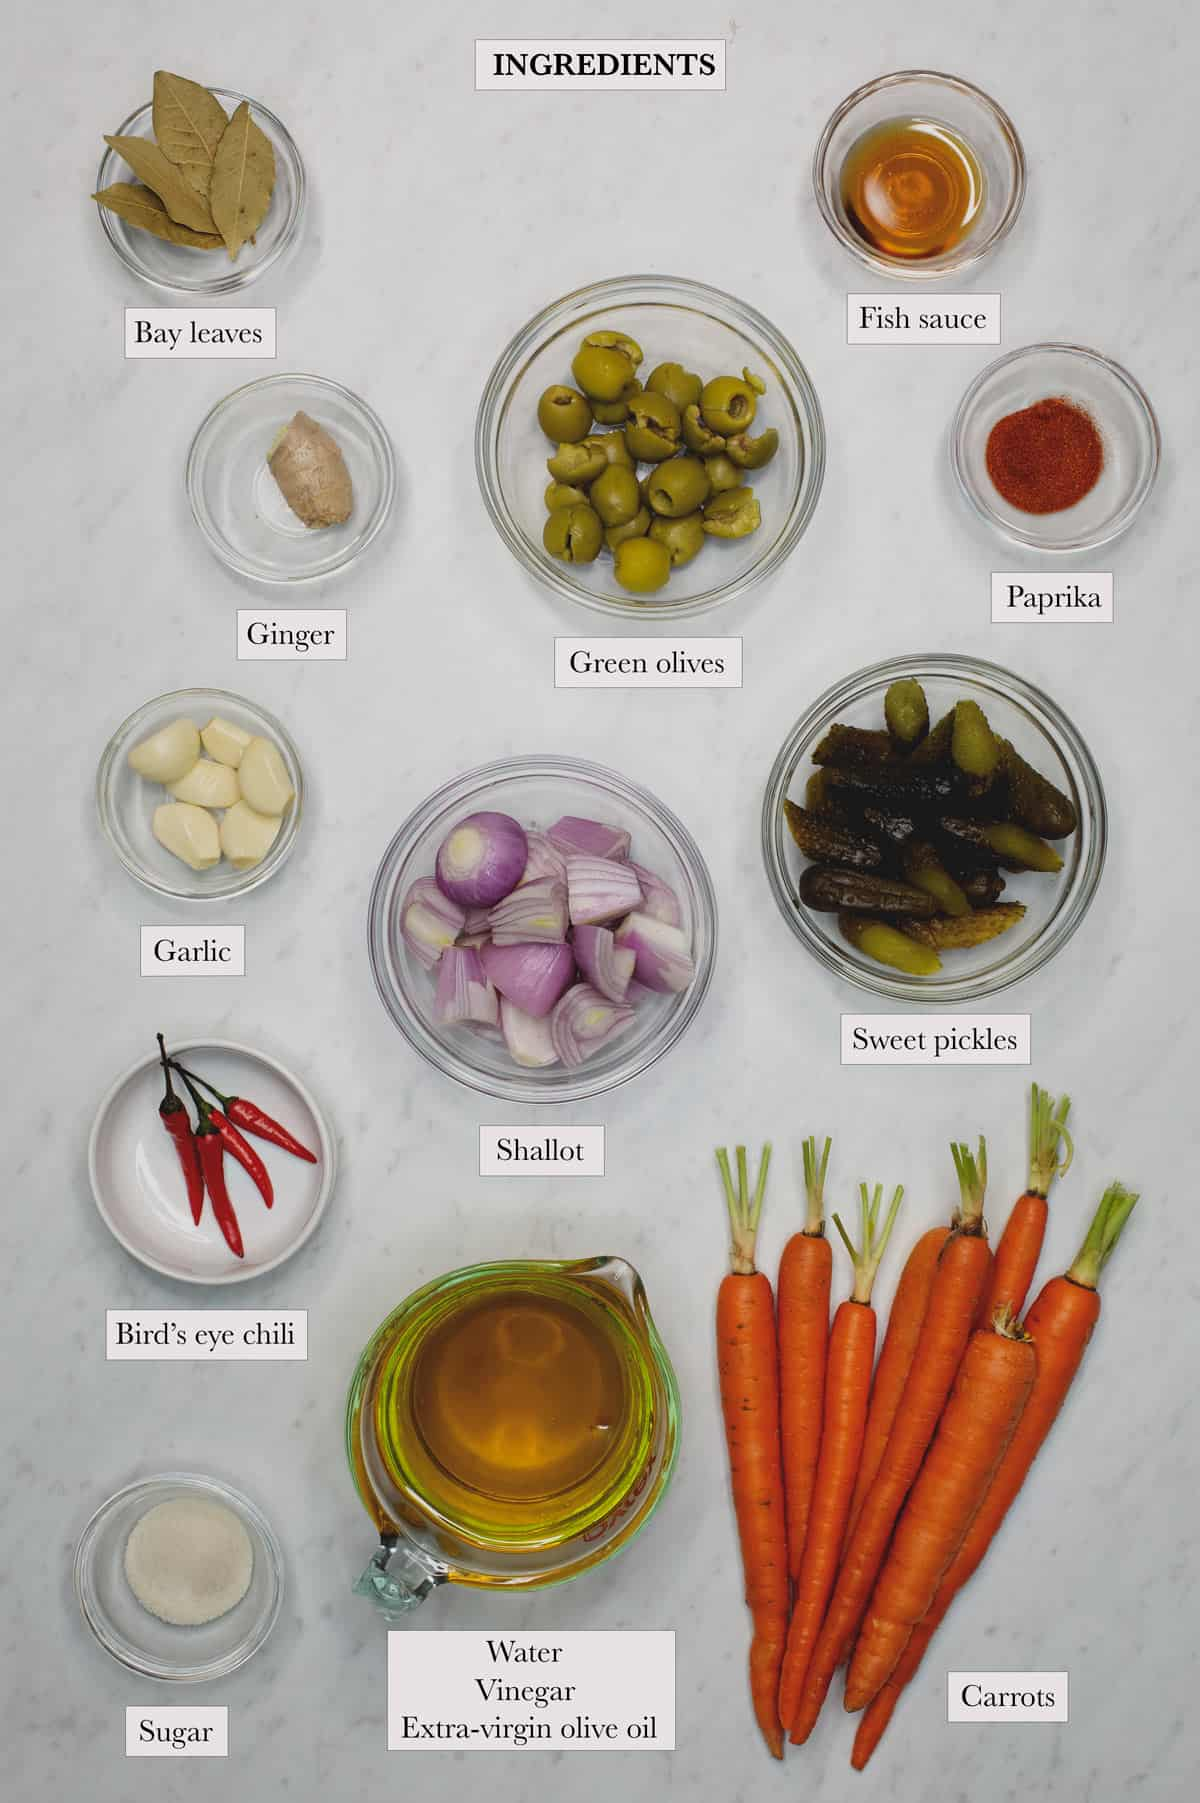 ingredients include carrots, sweet pickles, shallot, garlic, olives, bay leaves, ginger, sugar, bird's eye chili, fish sauce, paprika, water, vinegar, and extra-virgin olive oil.